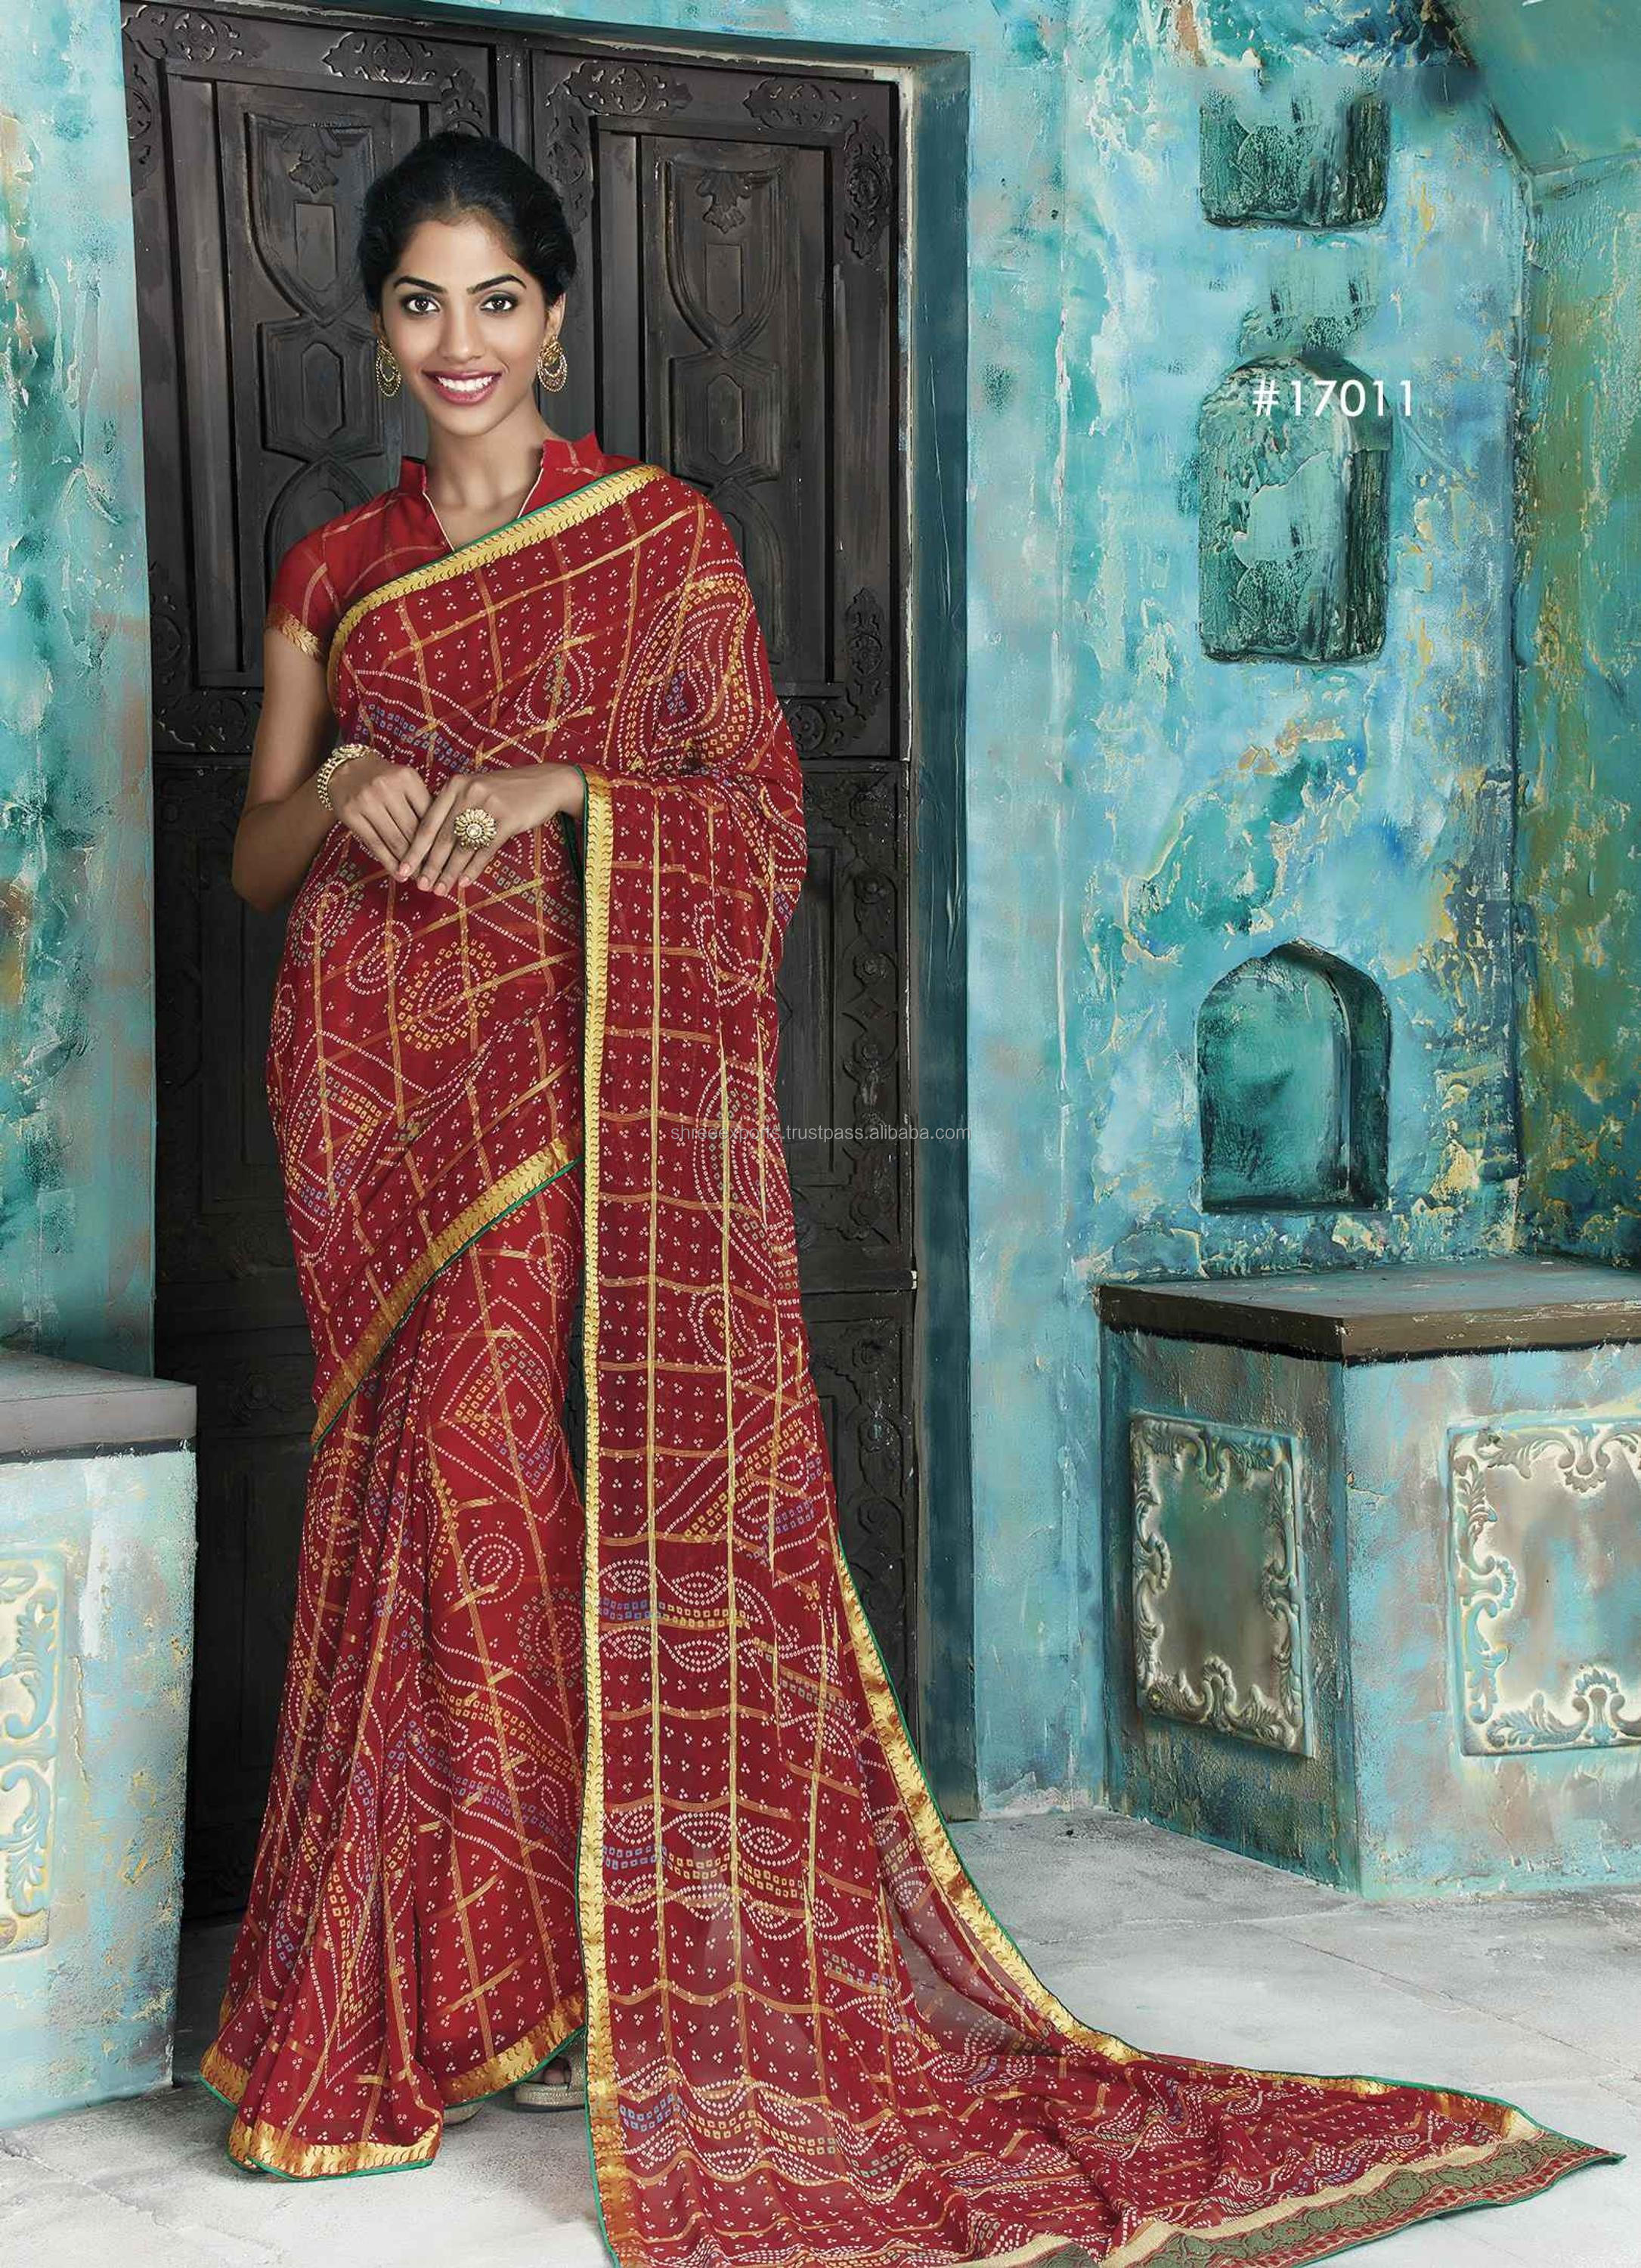 Georgette Multi Color Designer Saree / Sarees Online Buy / Online Saree Shopping / Sarees On Online Shopping